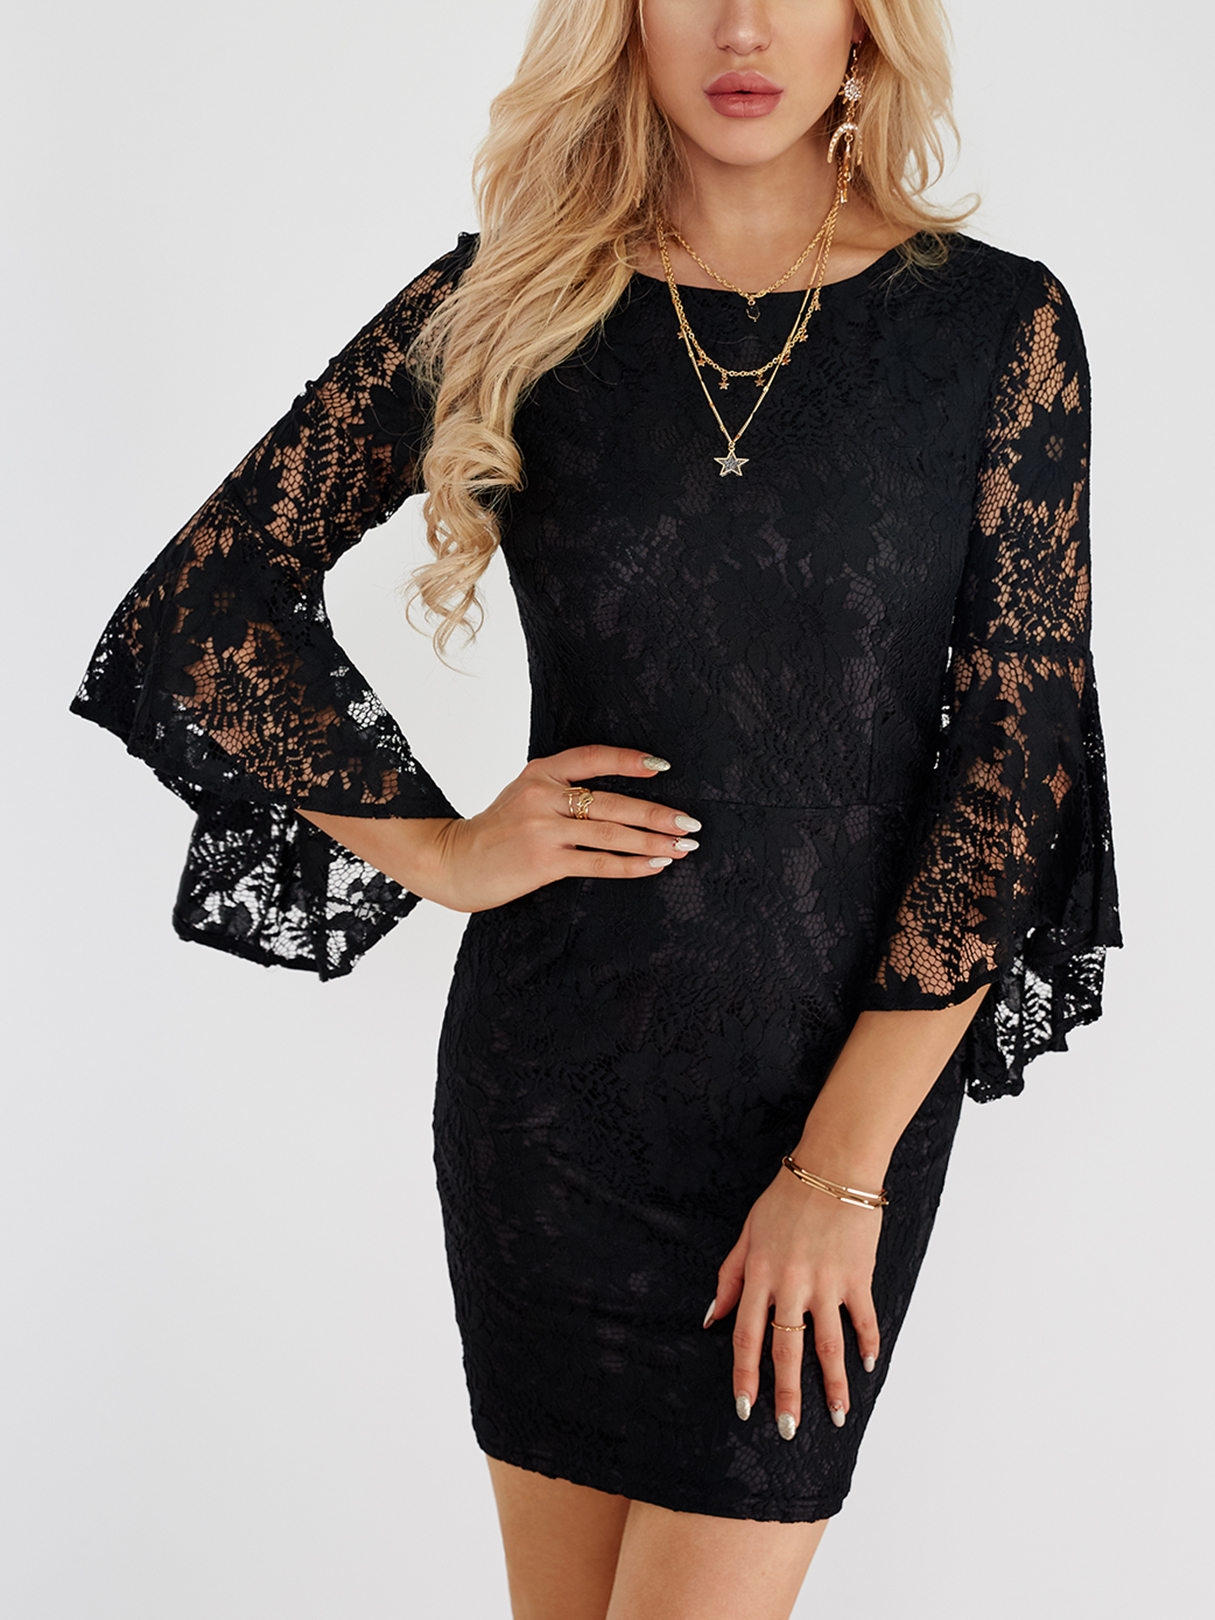 Black Lace Details Flared Sleeves Mini Dresses zip back fit and flared plaid dress